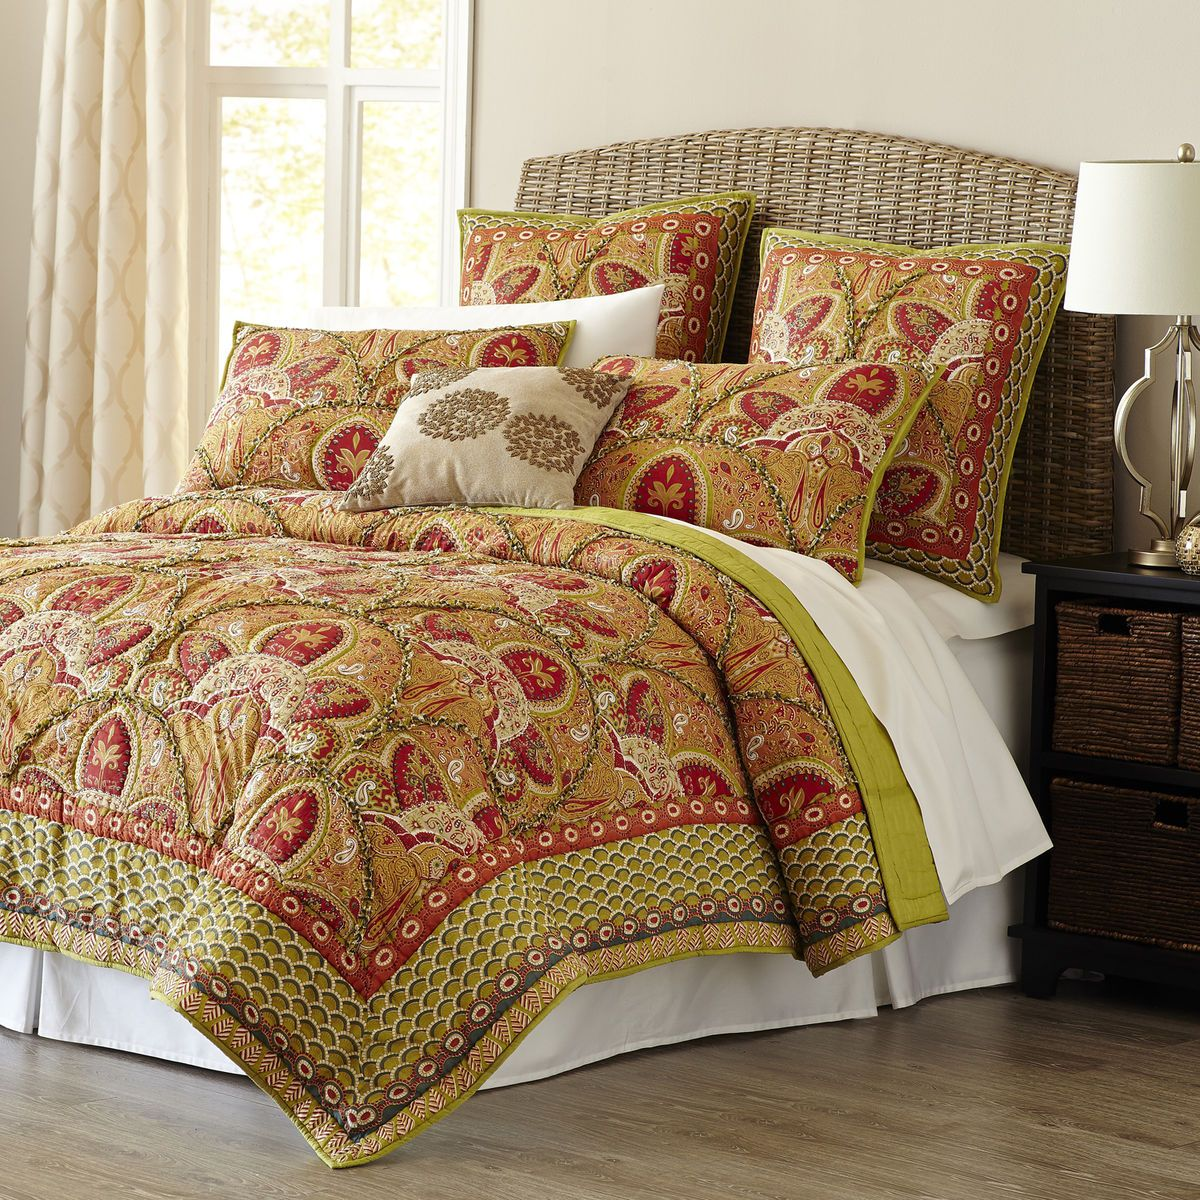 white quilts and look bedding you sets twin quilt grey ideas paisley black comforter can